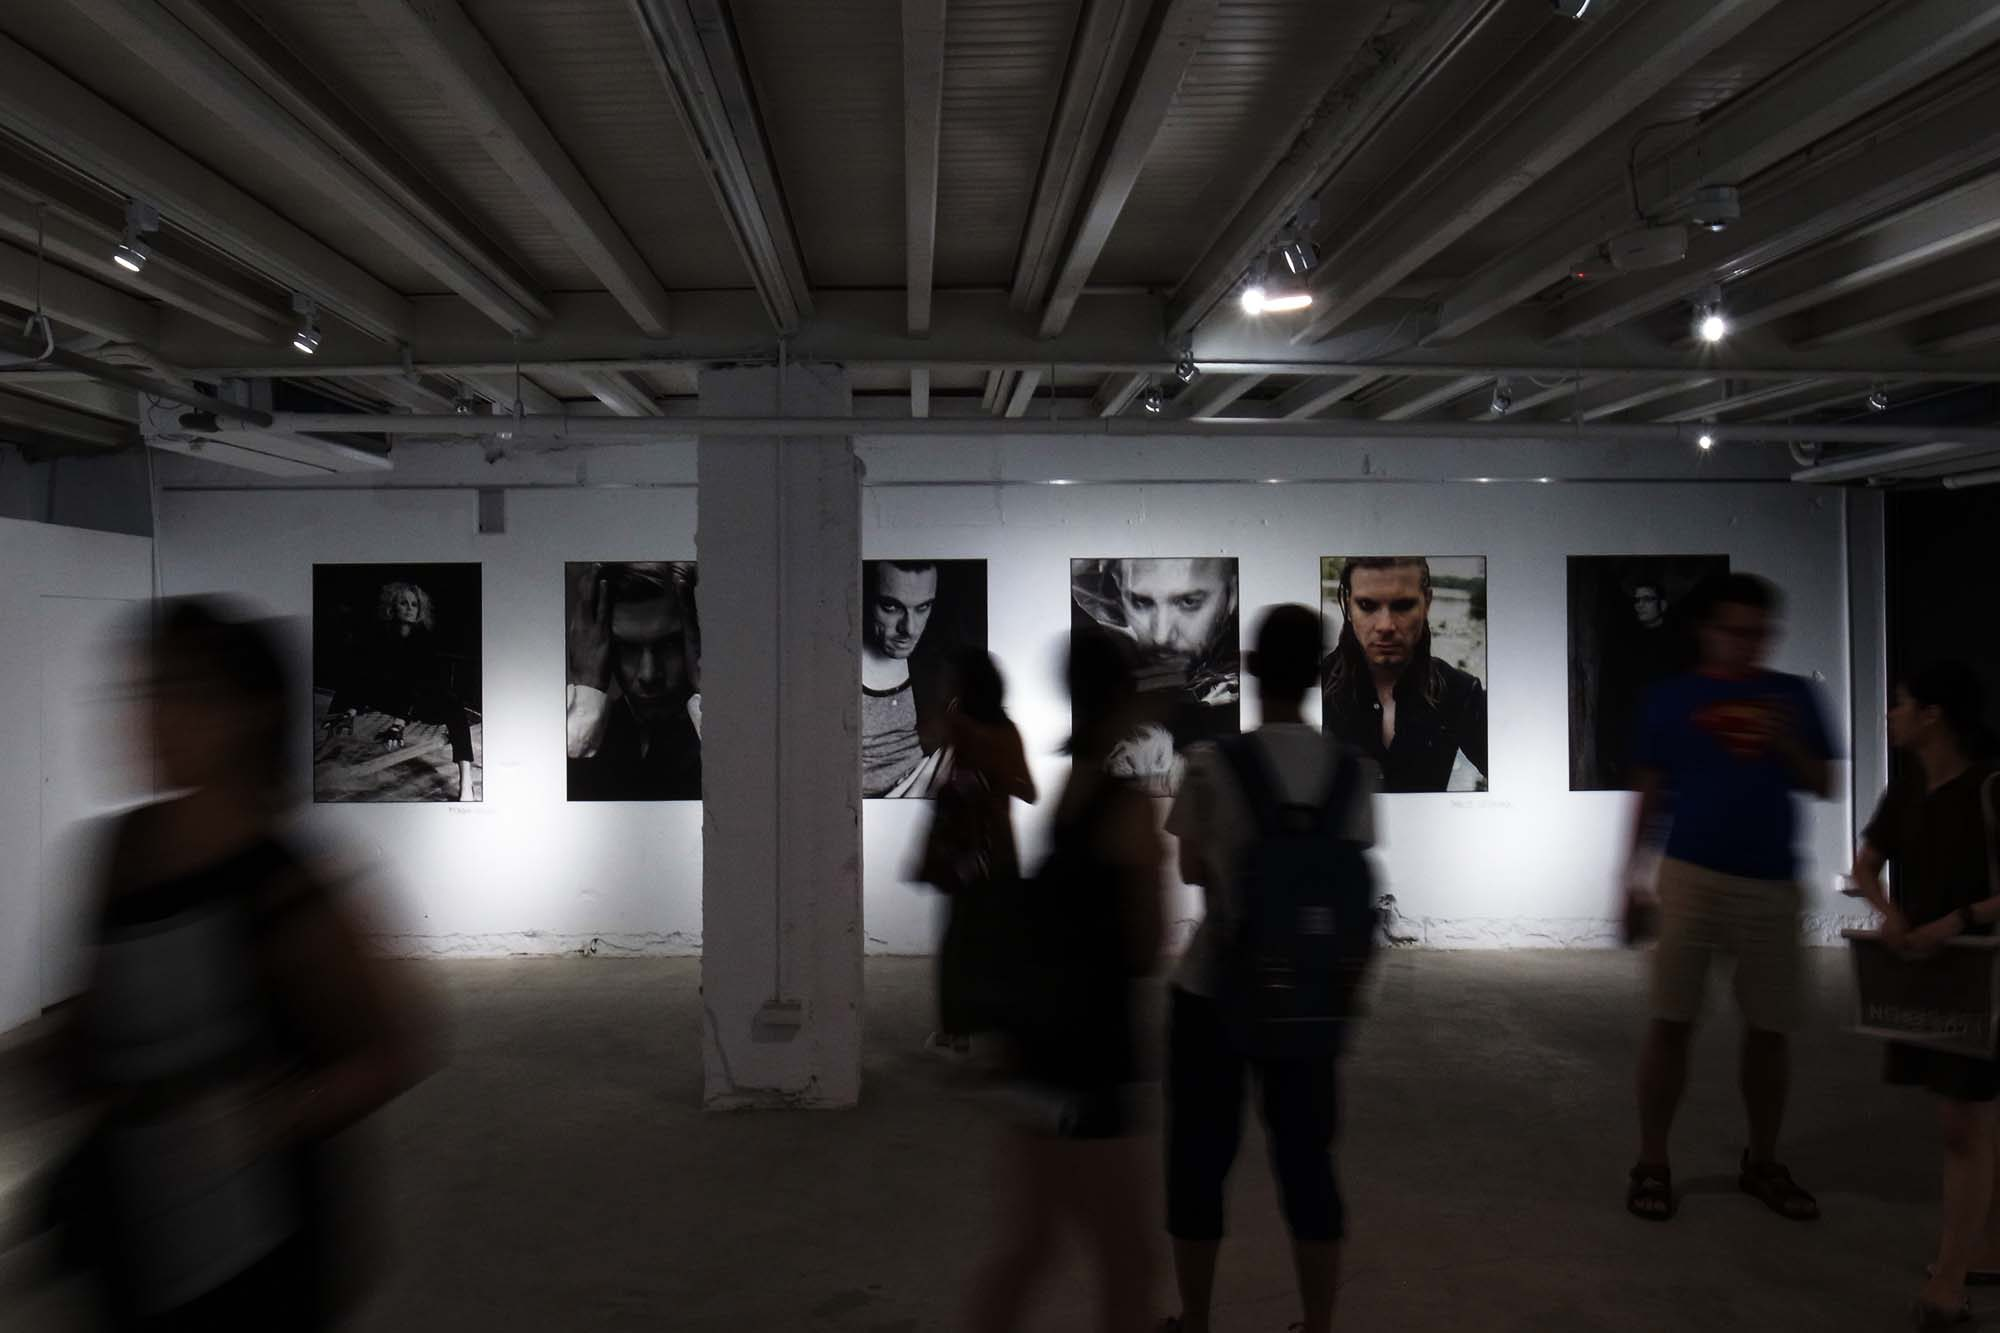 an-exhibition-of-electronic-music-and-photography-from-berlin-12